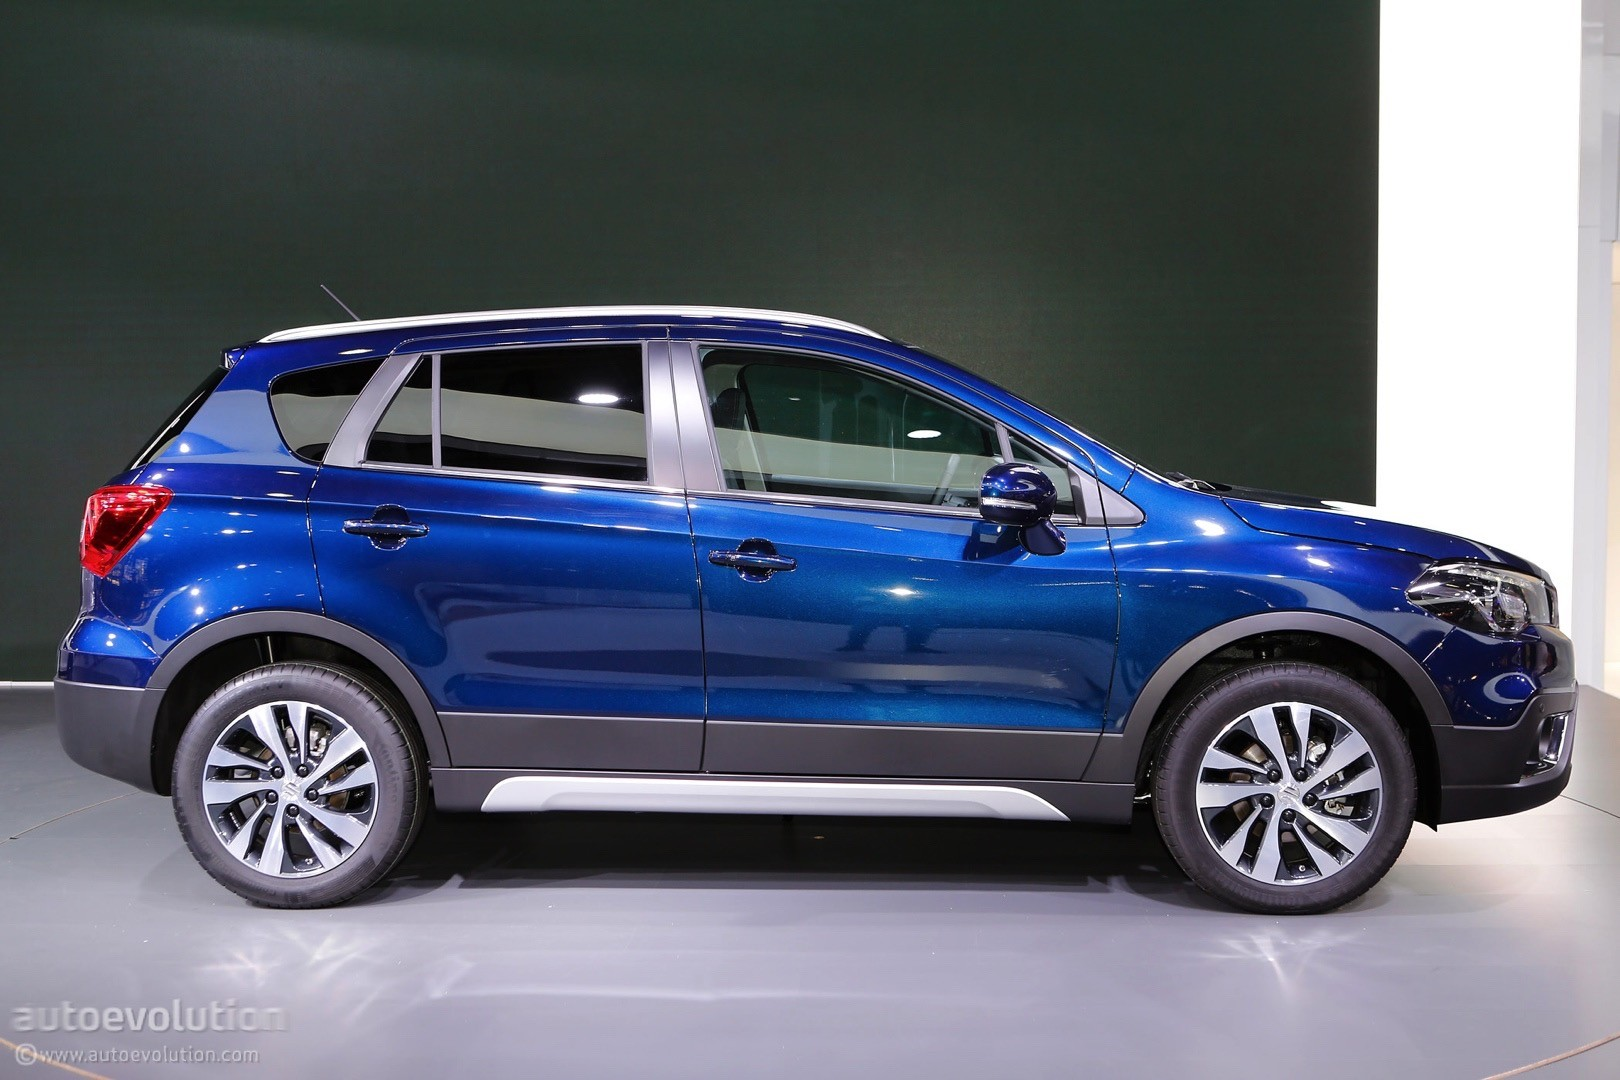 2017 Suzuki SX4 S Cross Facelift Live At 2016 Paris Motor Show